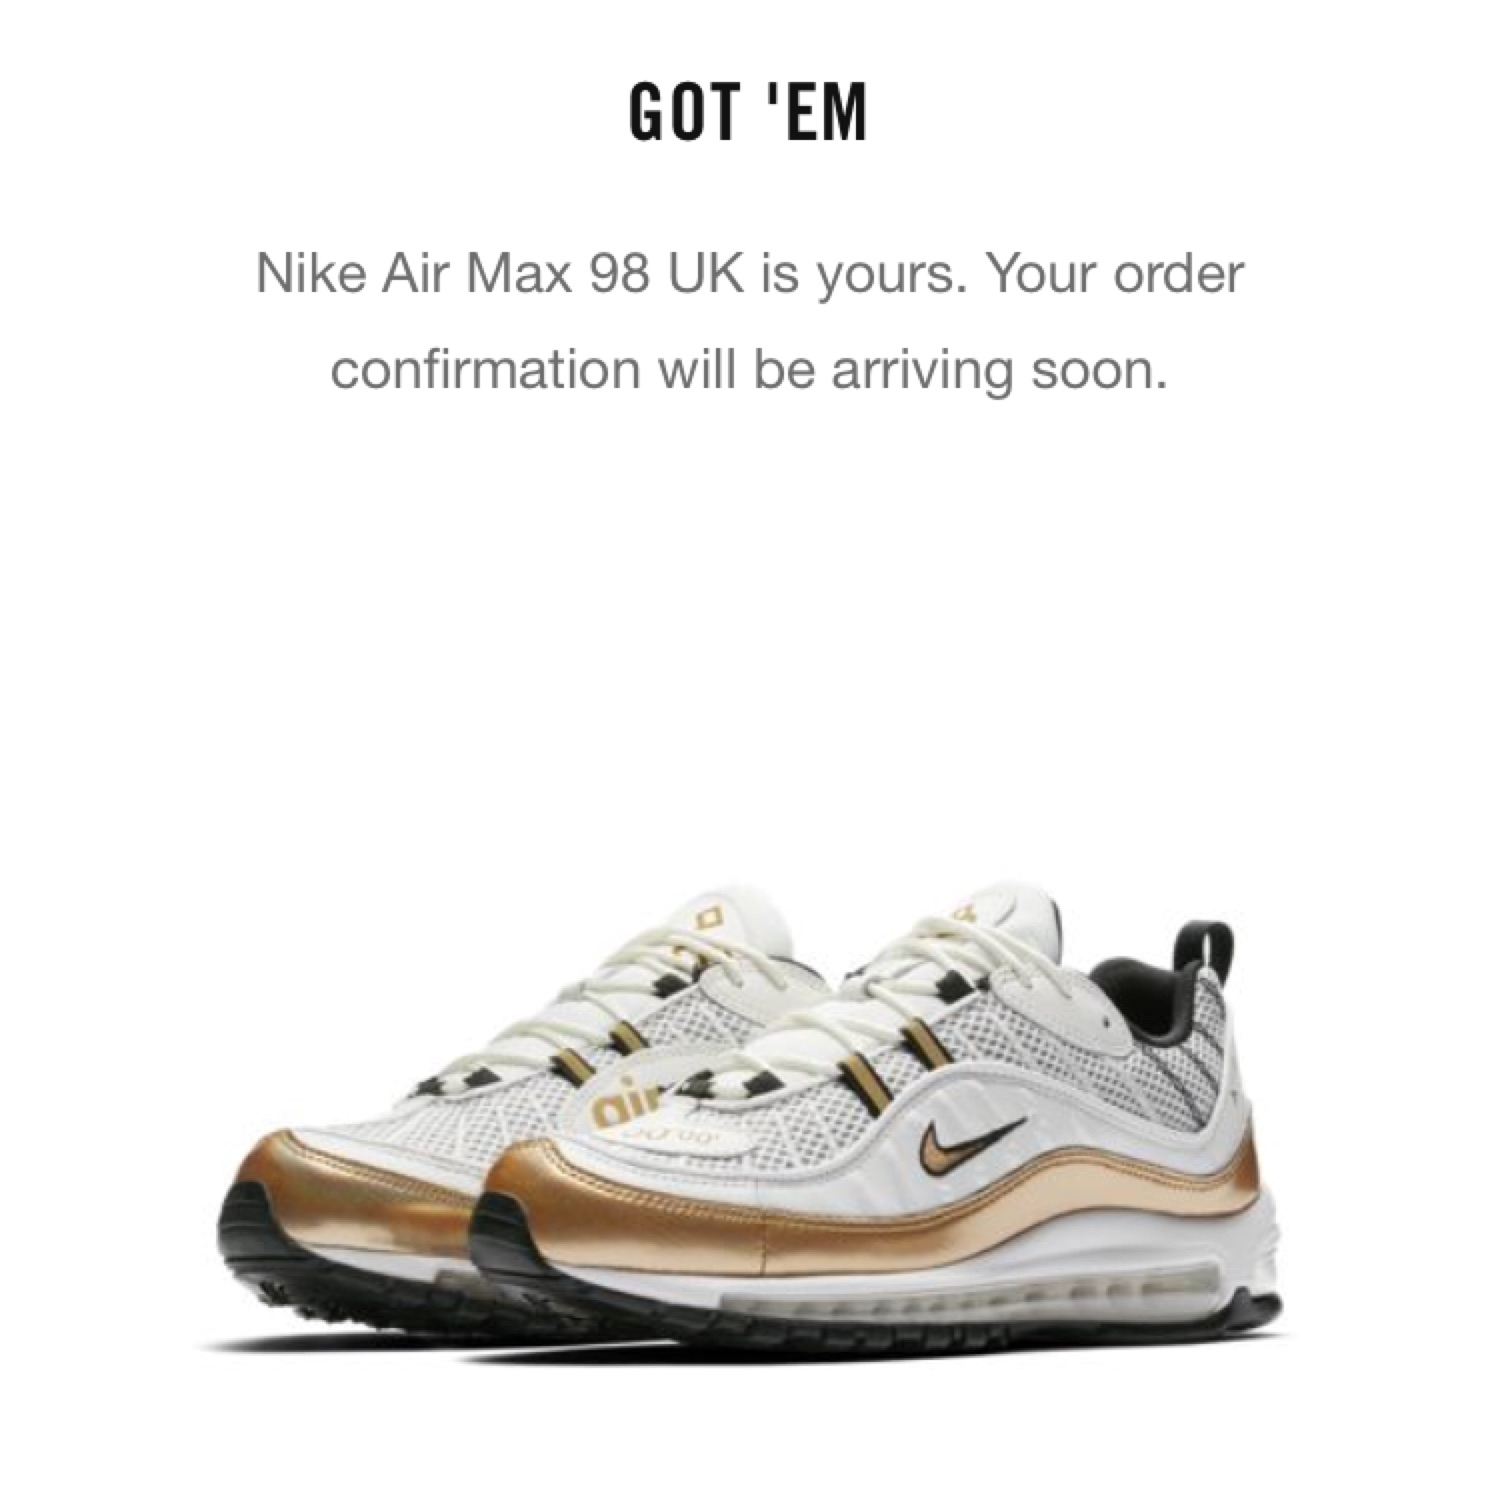 91838f2321 nike air max 98 white gold uk 1; air max 98 uk edition